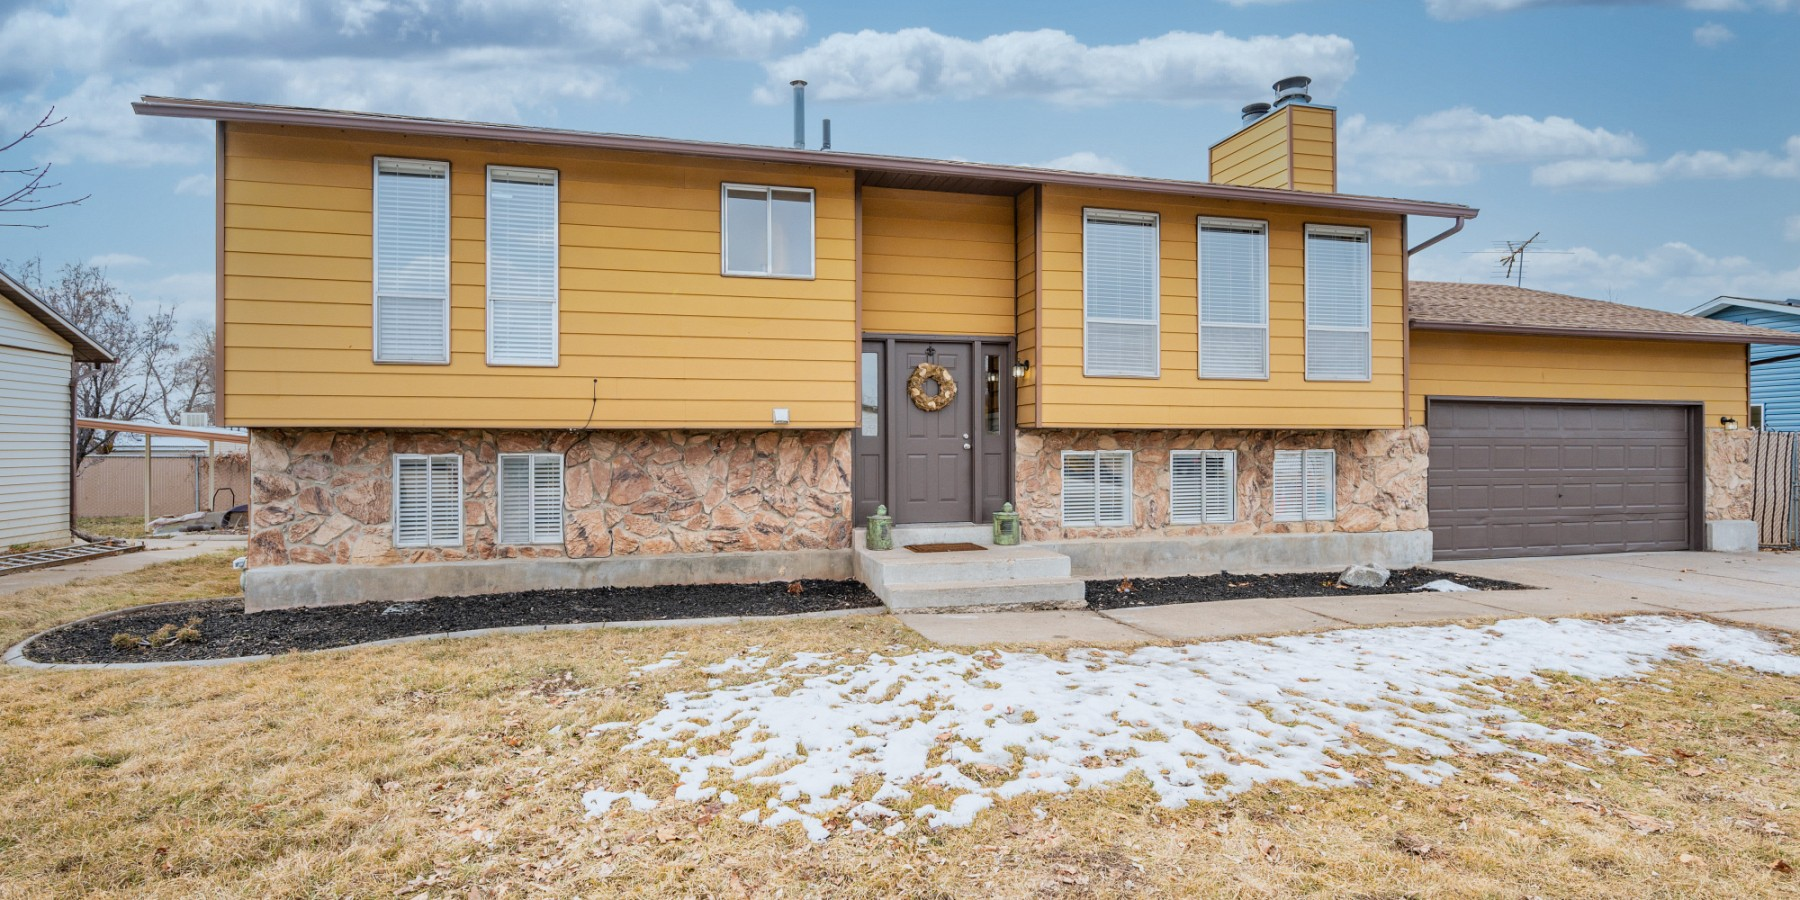 1049 West 525 North, Clearfield, UT 84015